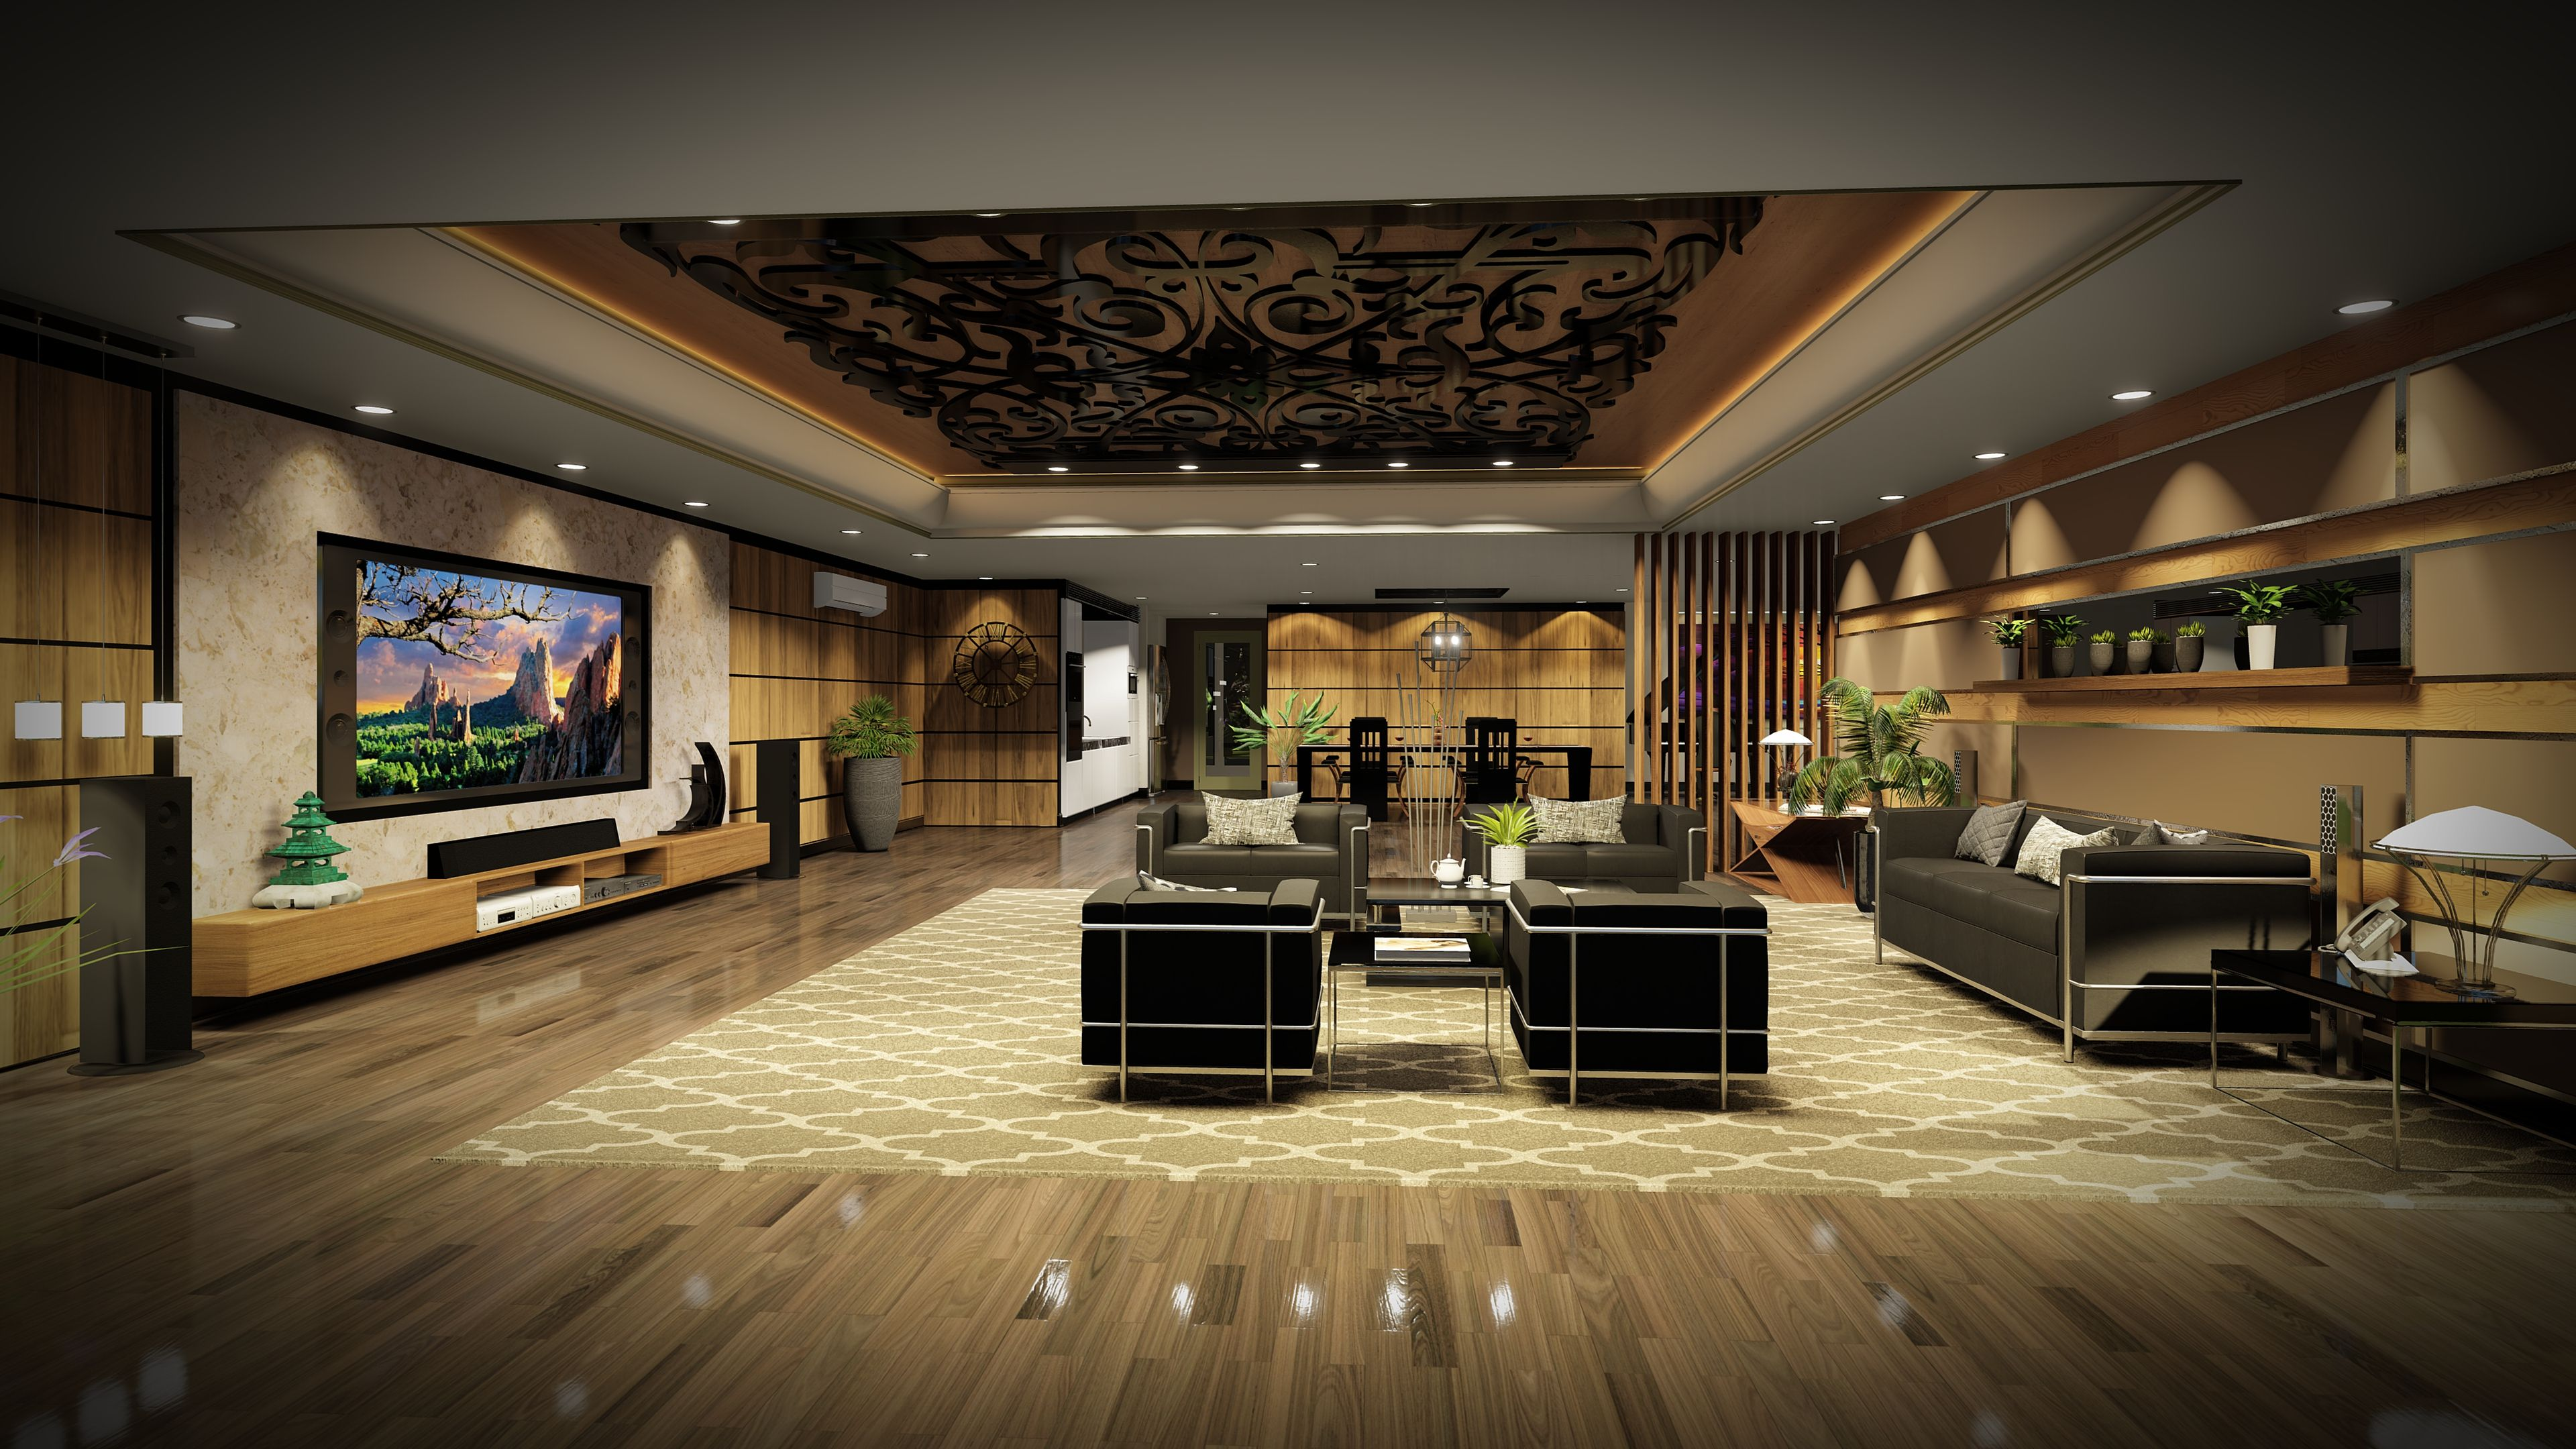 Modern Lounge Design Concept Created In Chief Architect Rendered